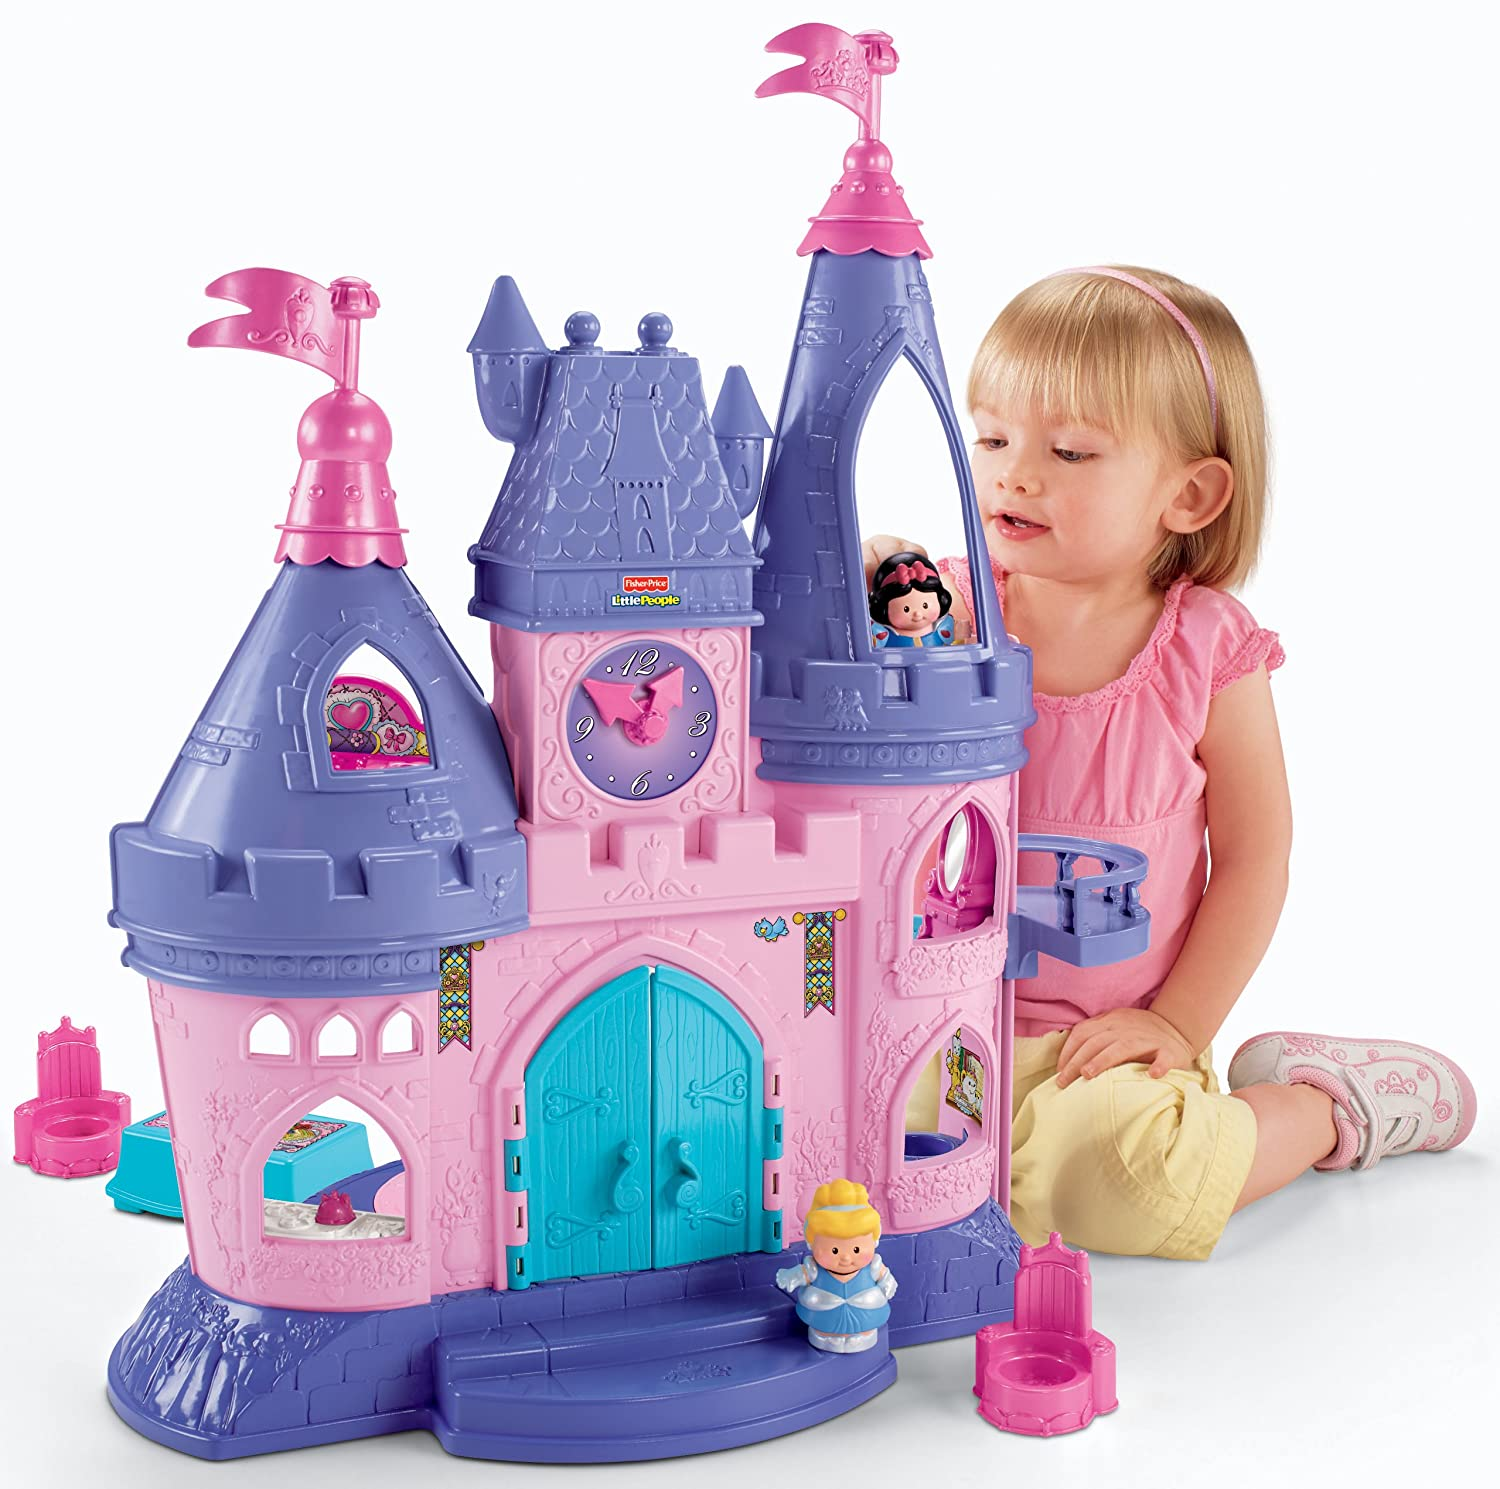 Top Toys For Age 2 : Best gifts for year old girls in itsy bitsy fun